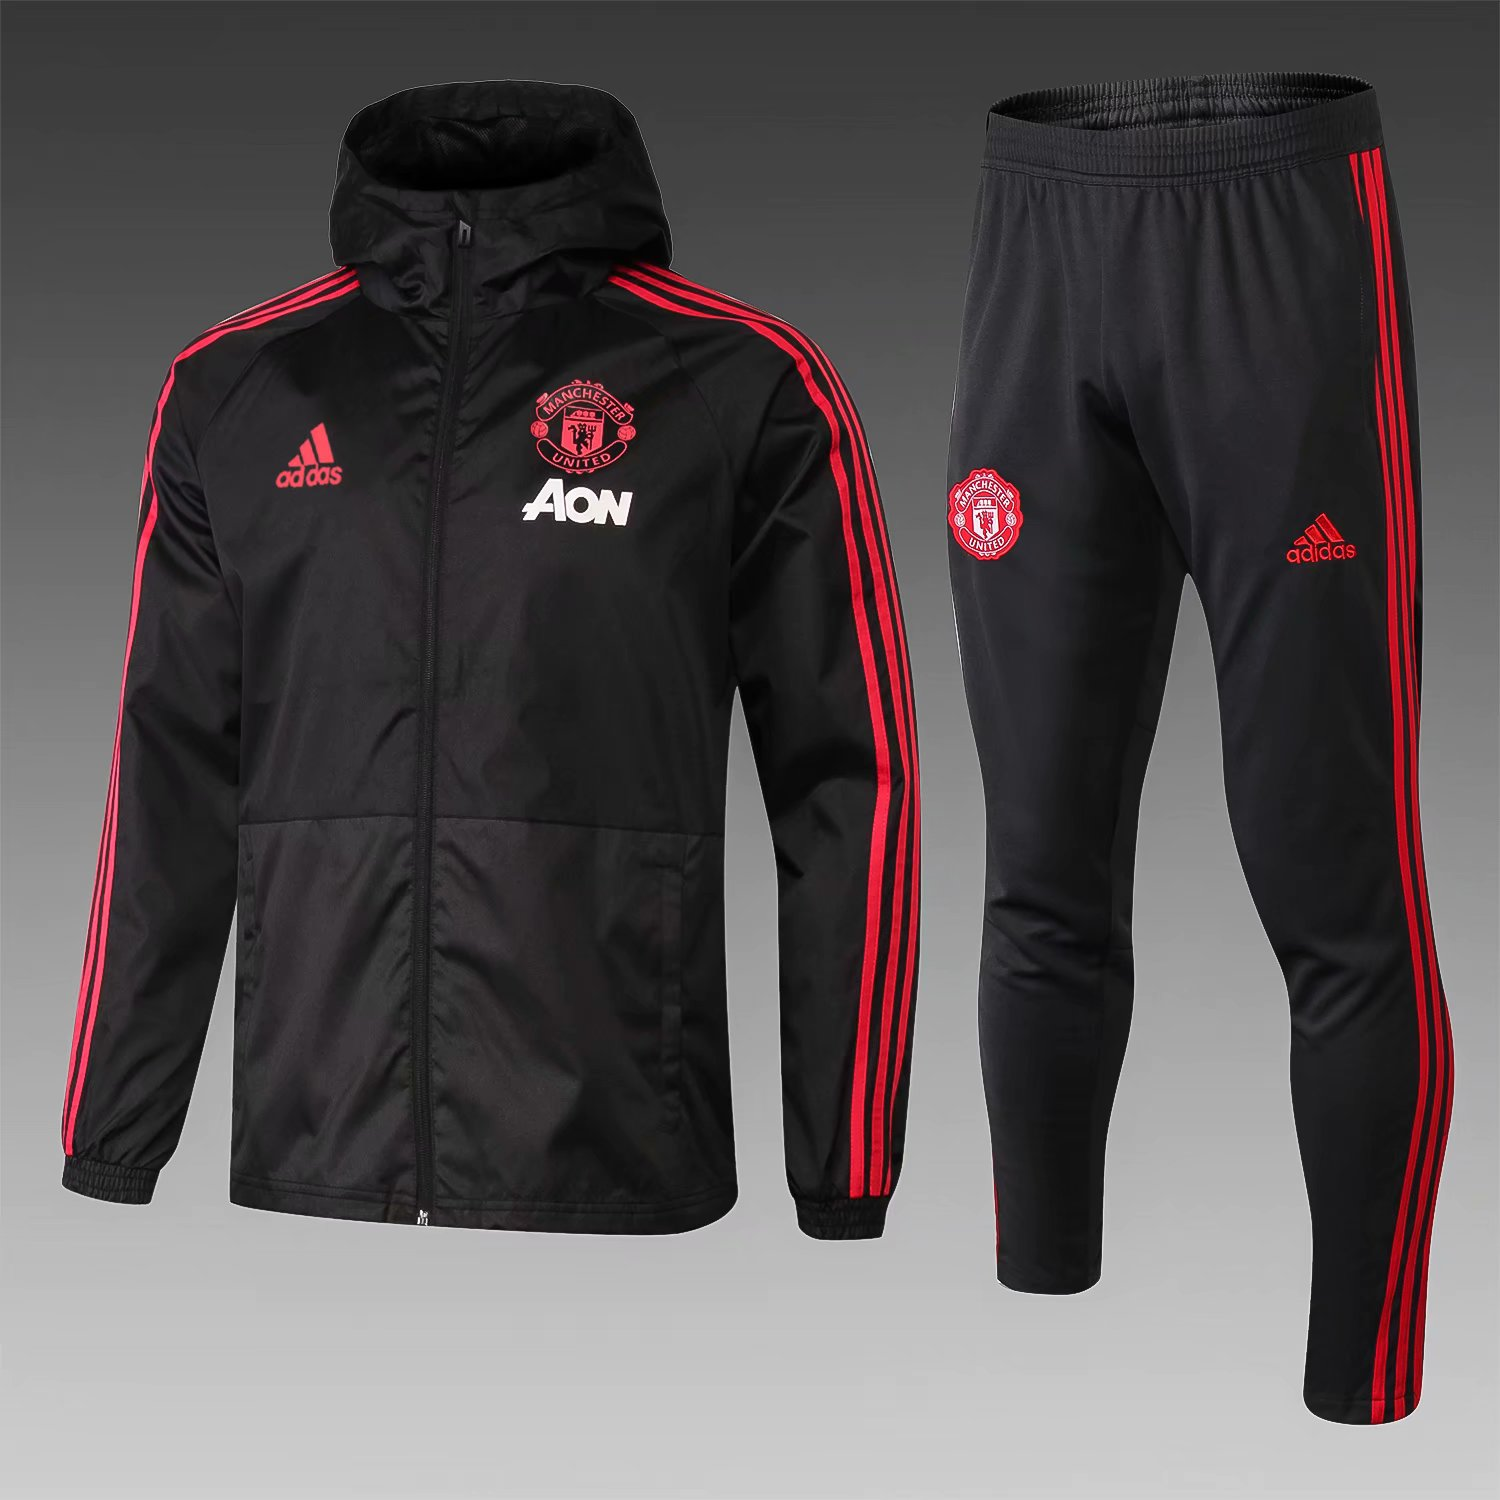 Football Vestes Veste Manchester United Windbreaker 2018 19